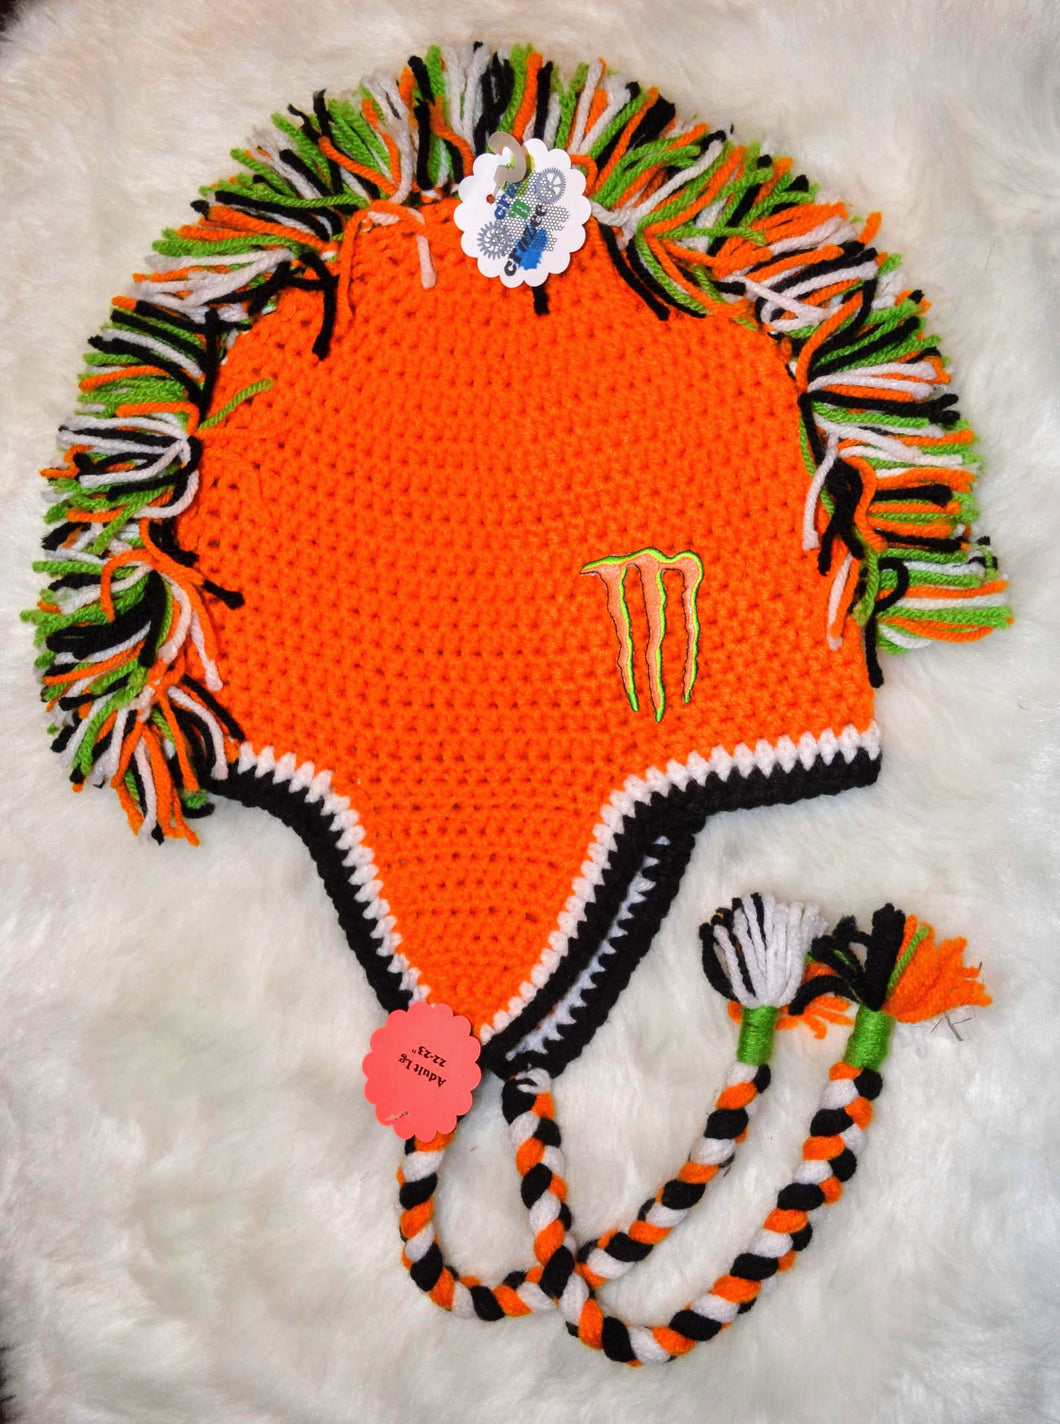 Orange & Green Monster Mohawk Beanie - Monster Winter Hat - Monster Energy Hat - Craft N Crazee